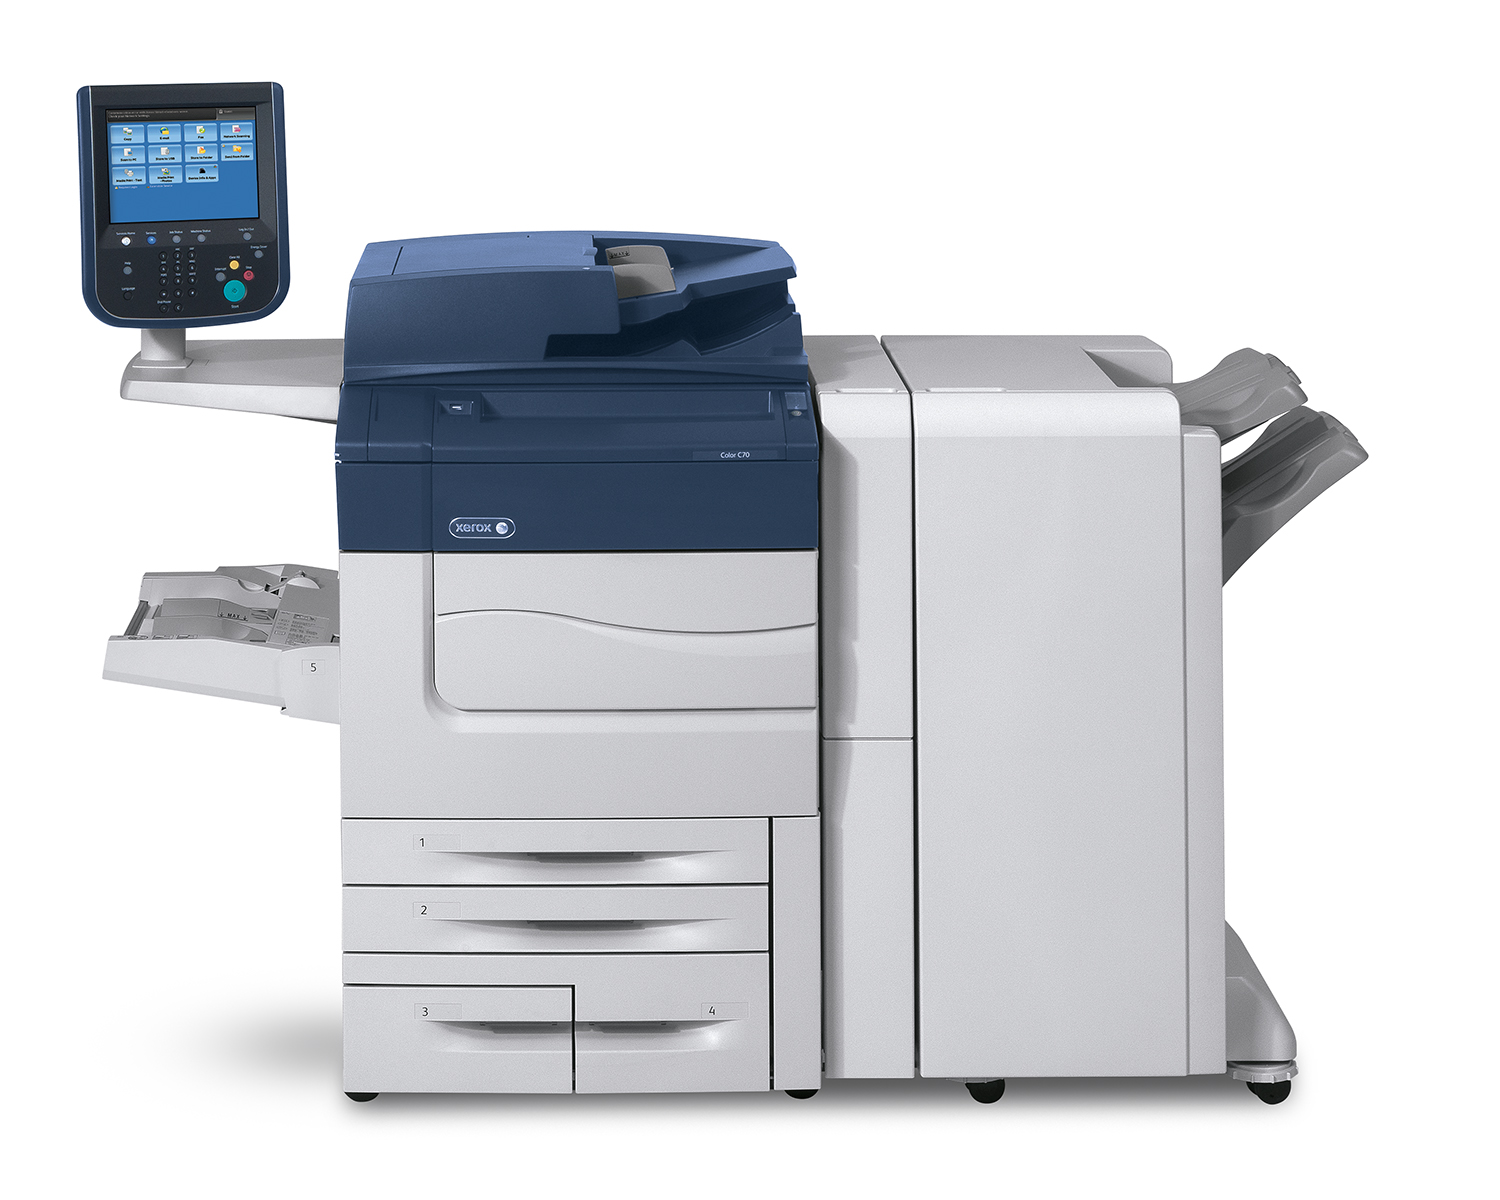 xerox 560 Lease Printer Copier Scanner 55025, 55073